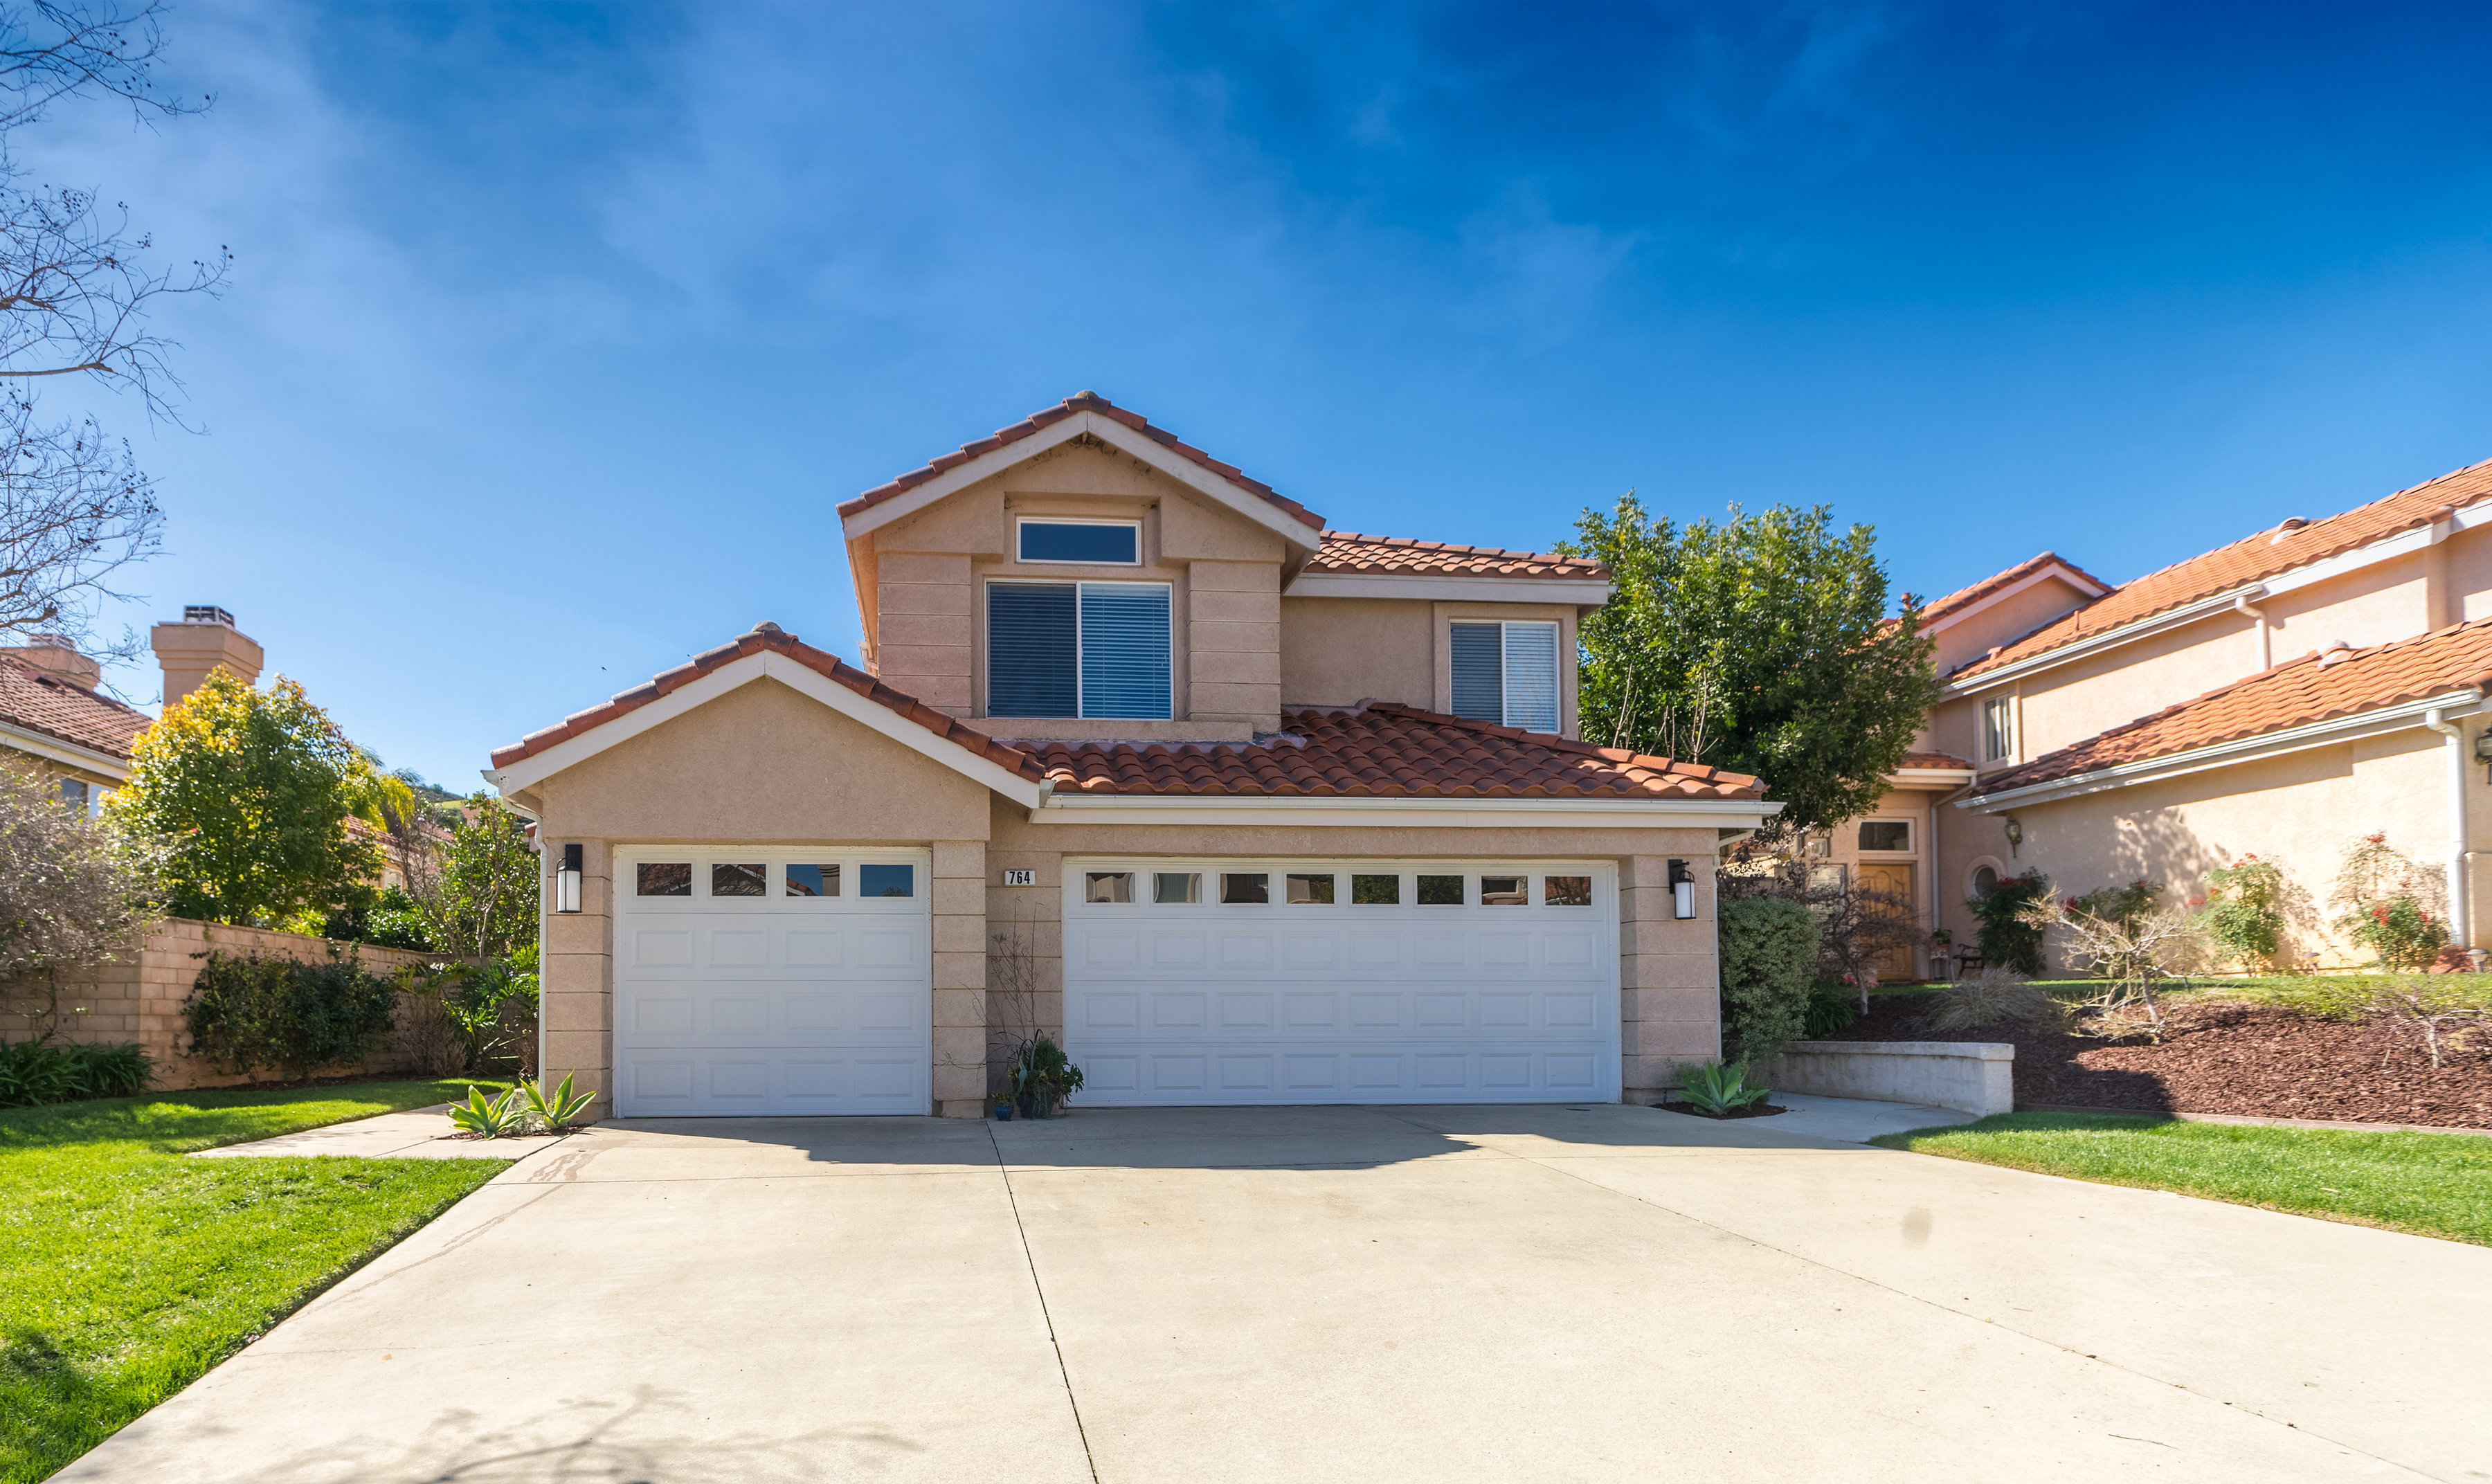 764 Cranmont Court, Simi Valley (Wood Ranch), CA 93065